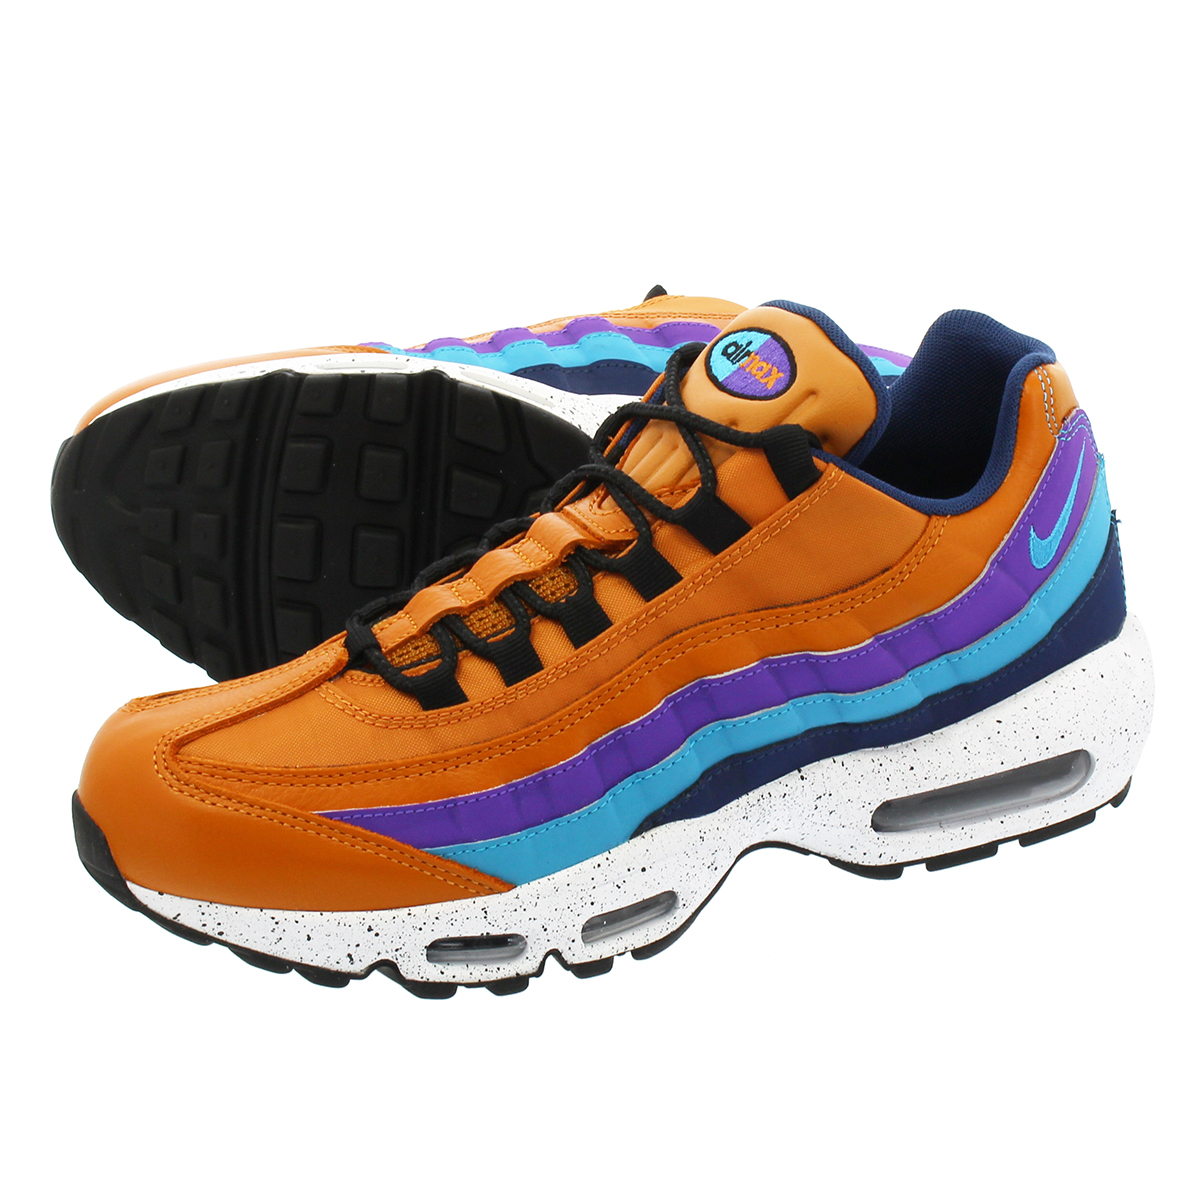 NIKE AIR MAX 95 PREMIUM ナイキ エア マックス 95 プレミアム MONARCH/LT BLUE FURY/NAVY/HYPER GRAPE 538416-800